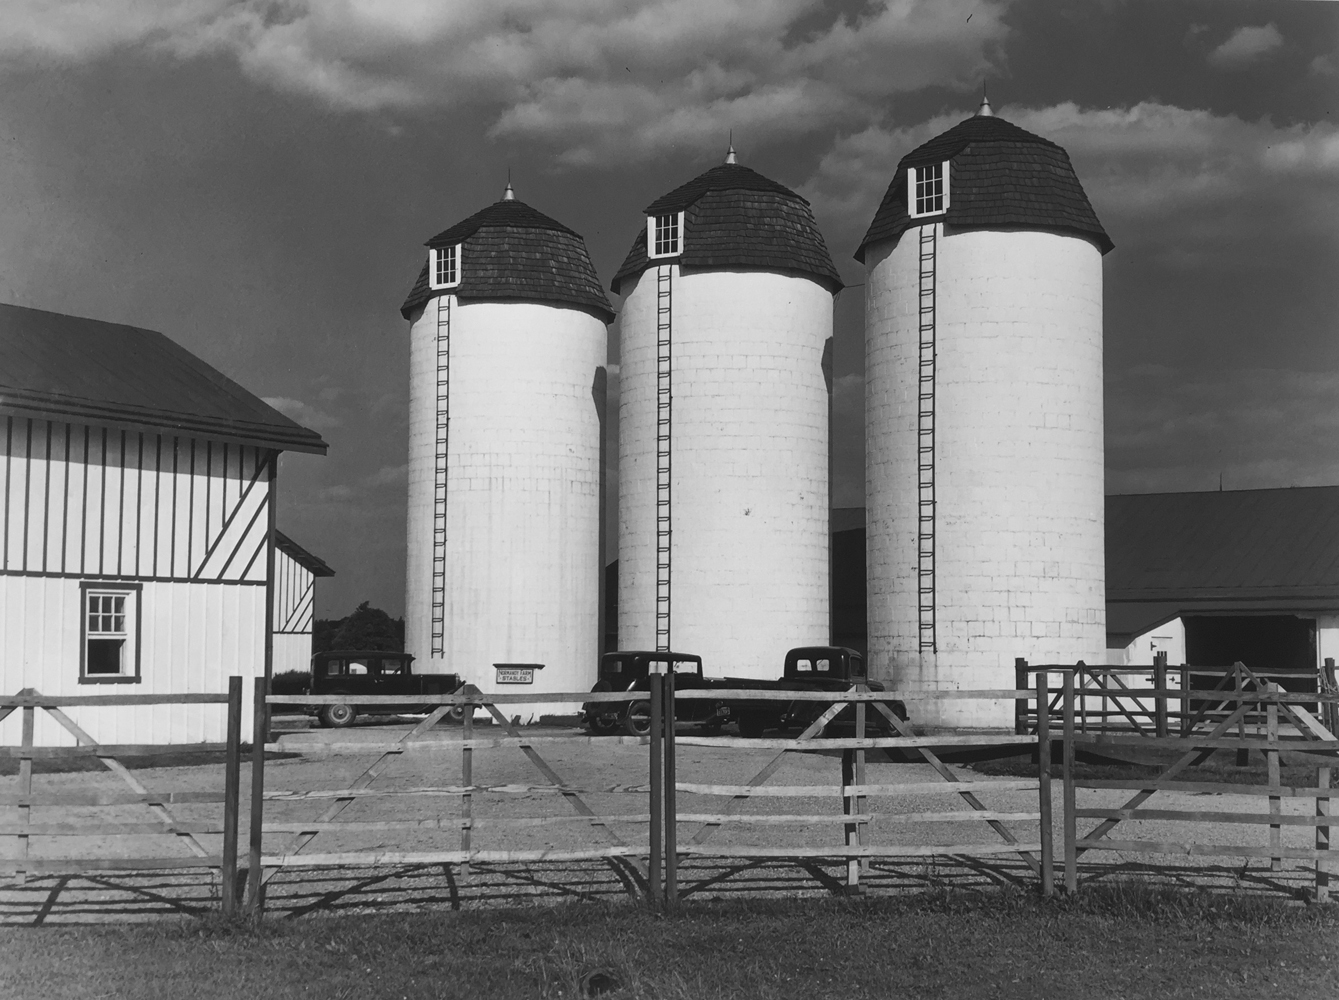 Marion Post Wolcott, Barn and silos on rich farmland, Bucks County, Pennsylvania, 1939, gelatin silver print, 11 x 14 inches, price on request